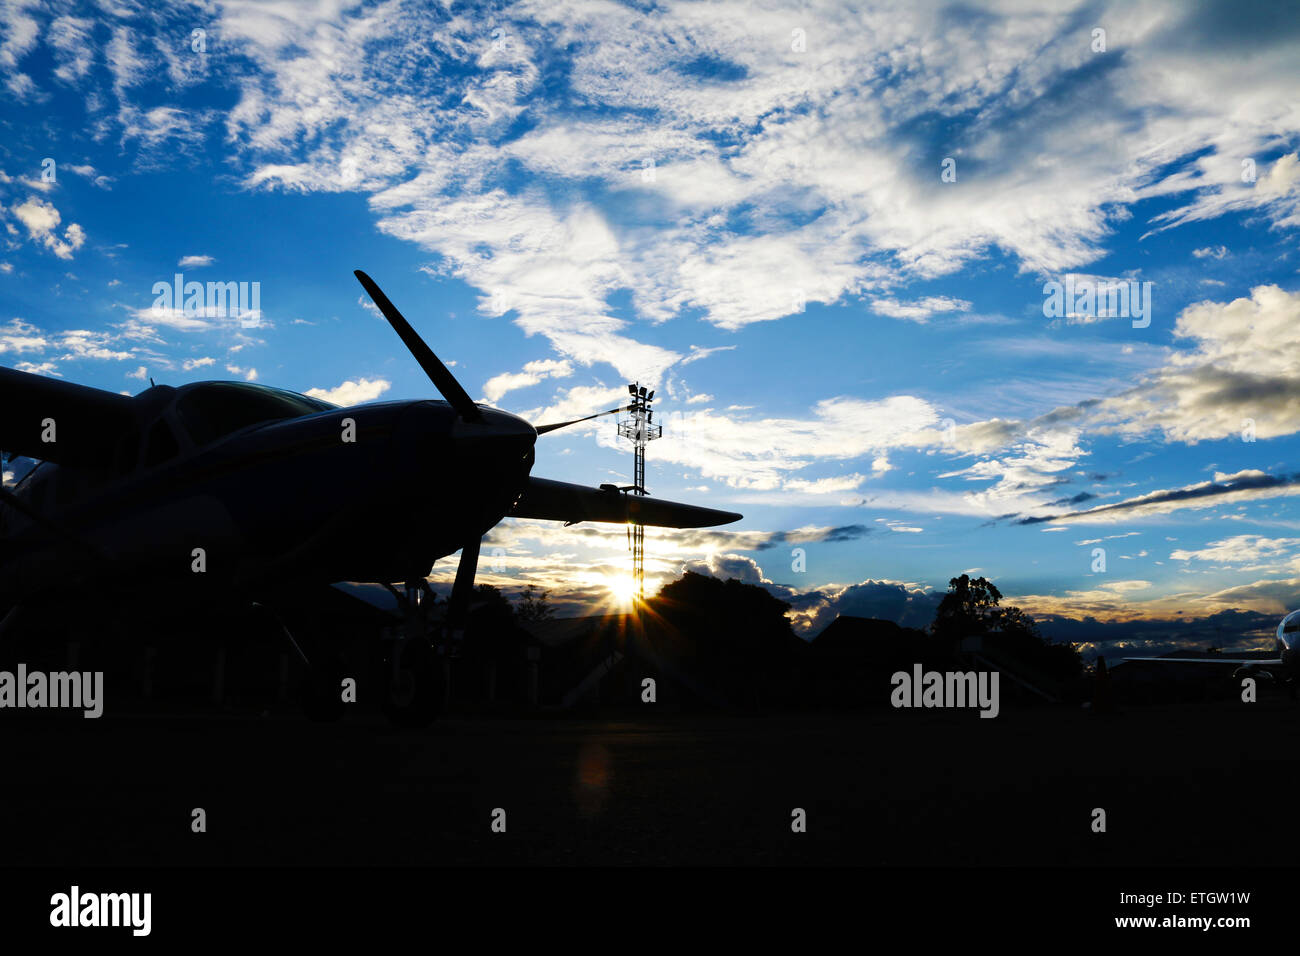 A Photo of 'Sillhouette airplane in the afternoon in Wamena airport' - Stock Image